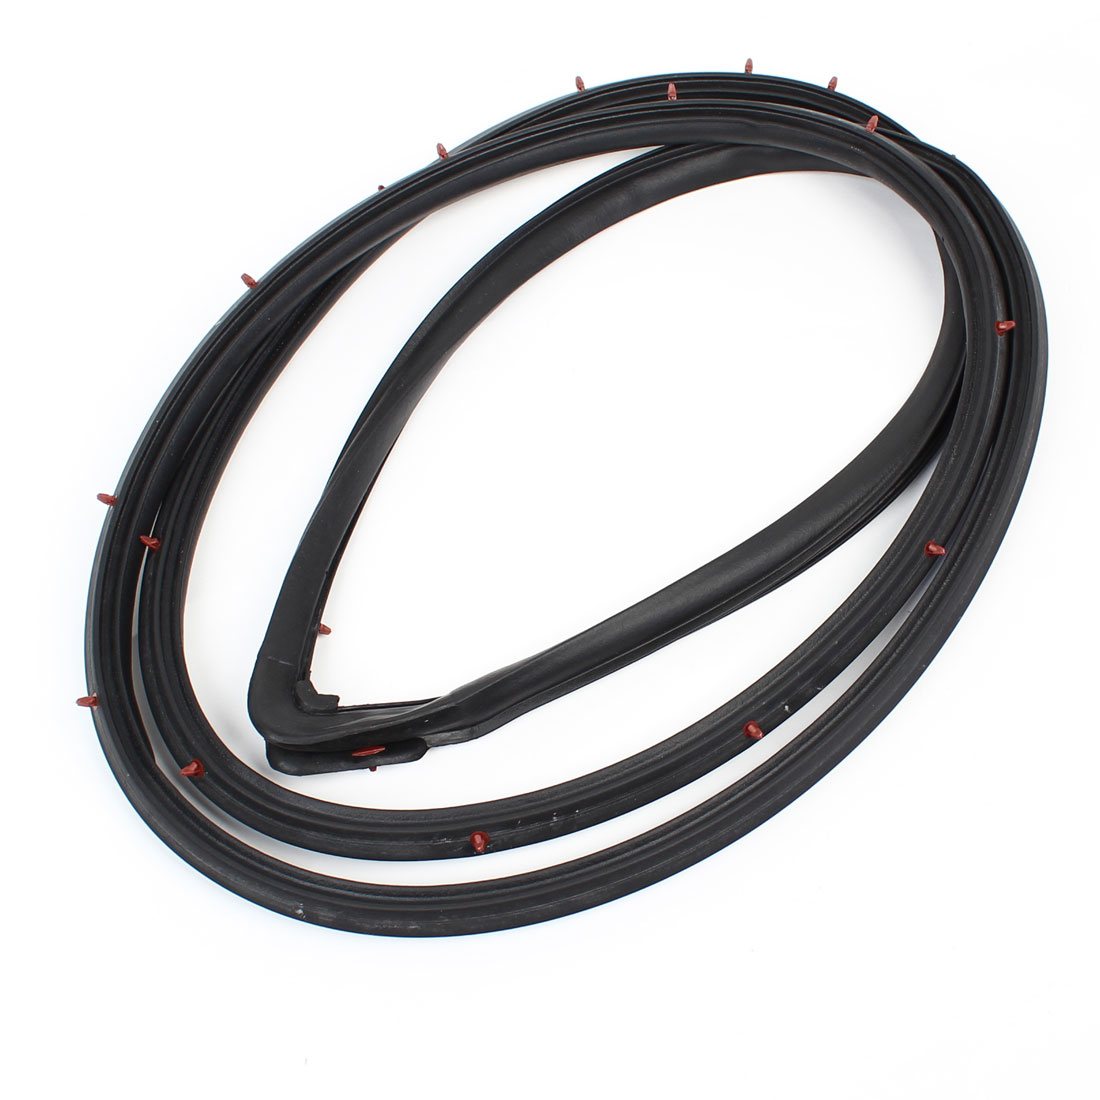 Car Auto Black Rubber Left Front Door Weatherstrip Sealing Strip 72350-S84-A01